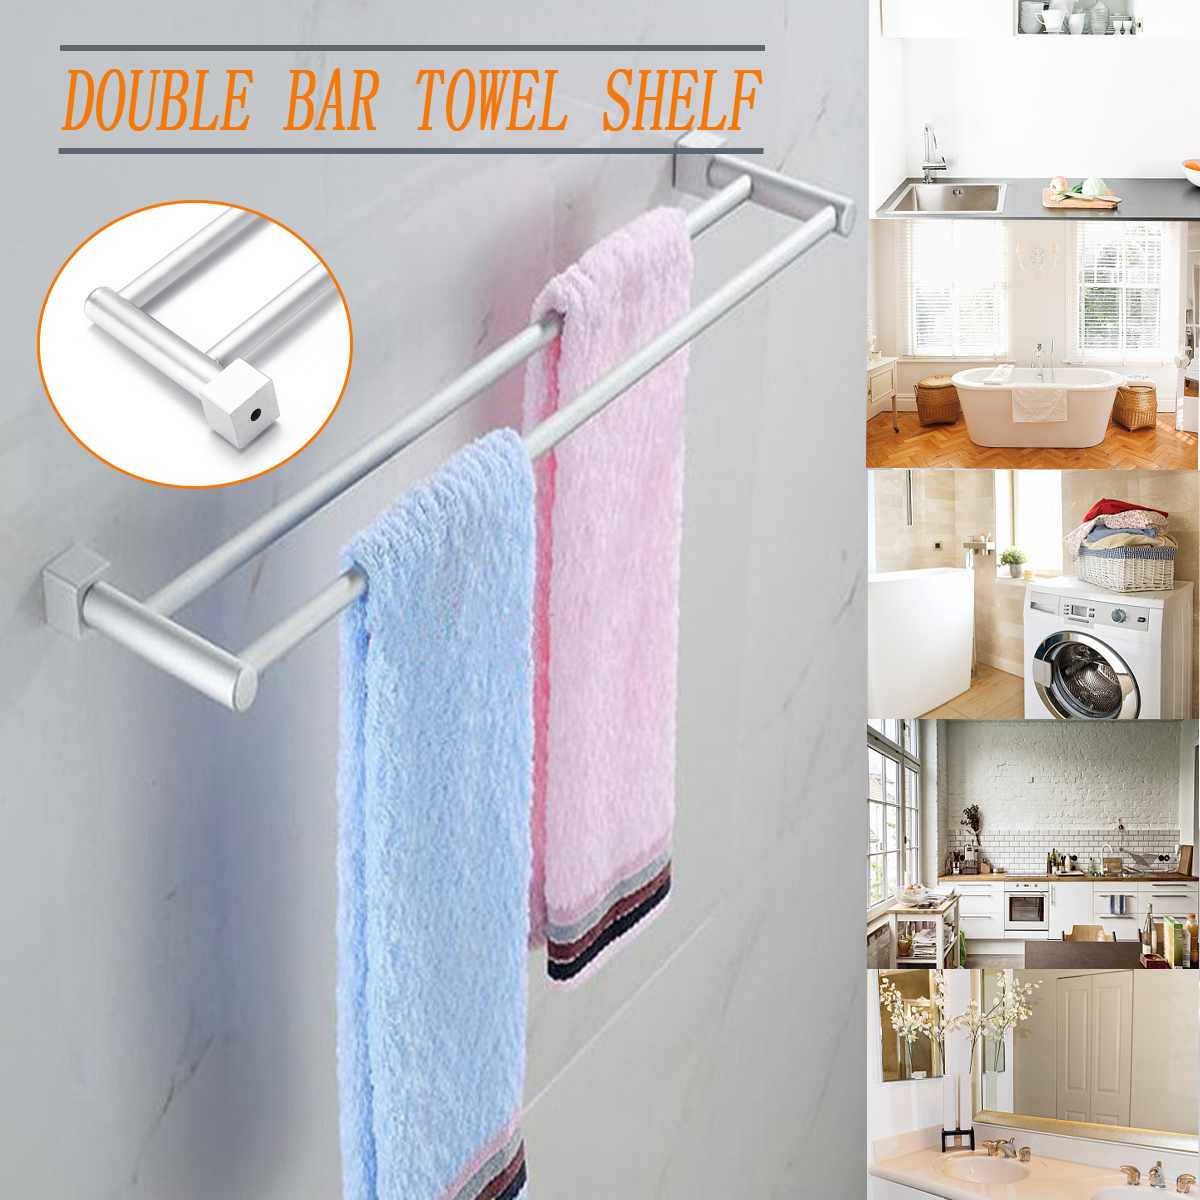 Xueqin Bathroom Double Towel Rail Rack 2 Bar Space Aluminum Hanger Wall Mounted Towel Shelf Bath Rails Bars Holder 58x12cm машинки технопарк машина технопарк металлическая инерционная bentley continental